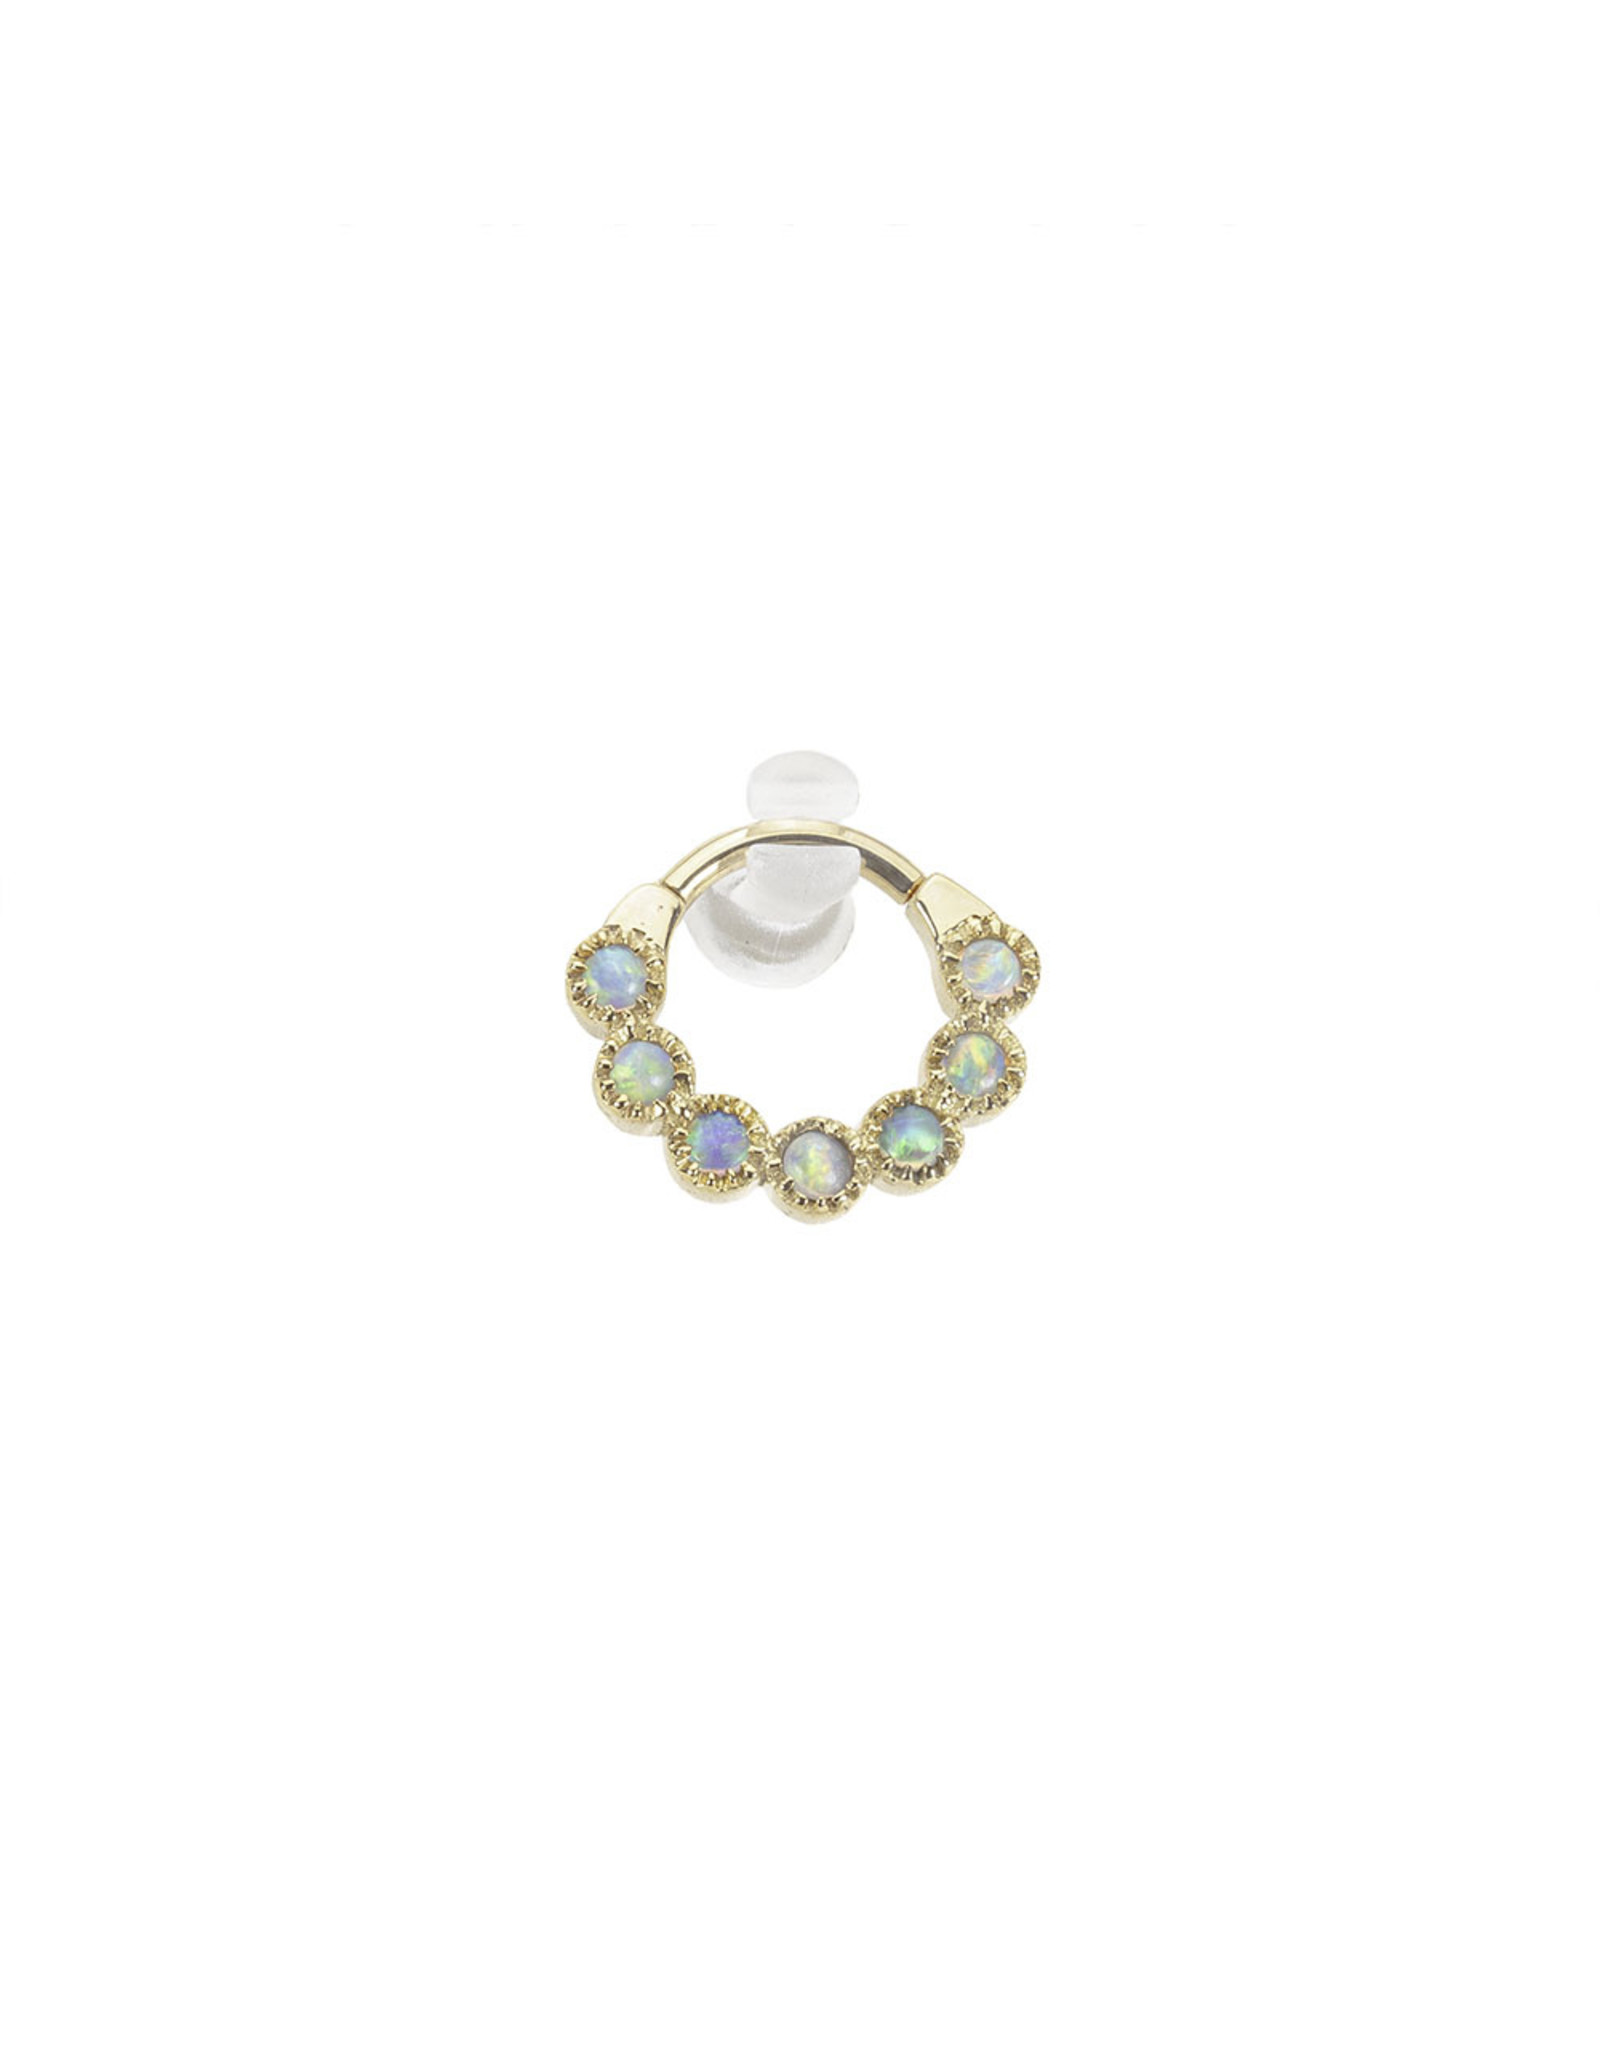 """BVLA BVLA 16g 5/16 rose gold """"Marina"""" clicker with 7x 2.0 AAA white opal"""